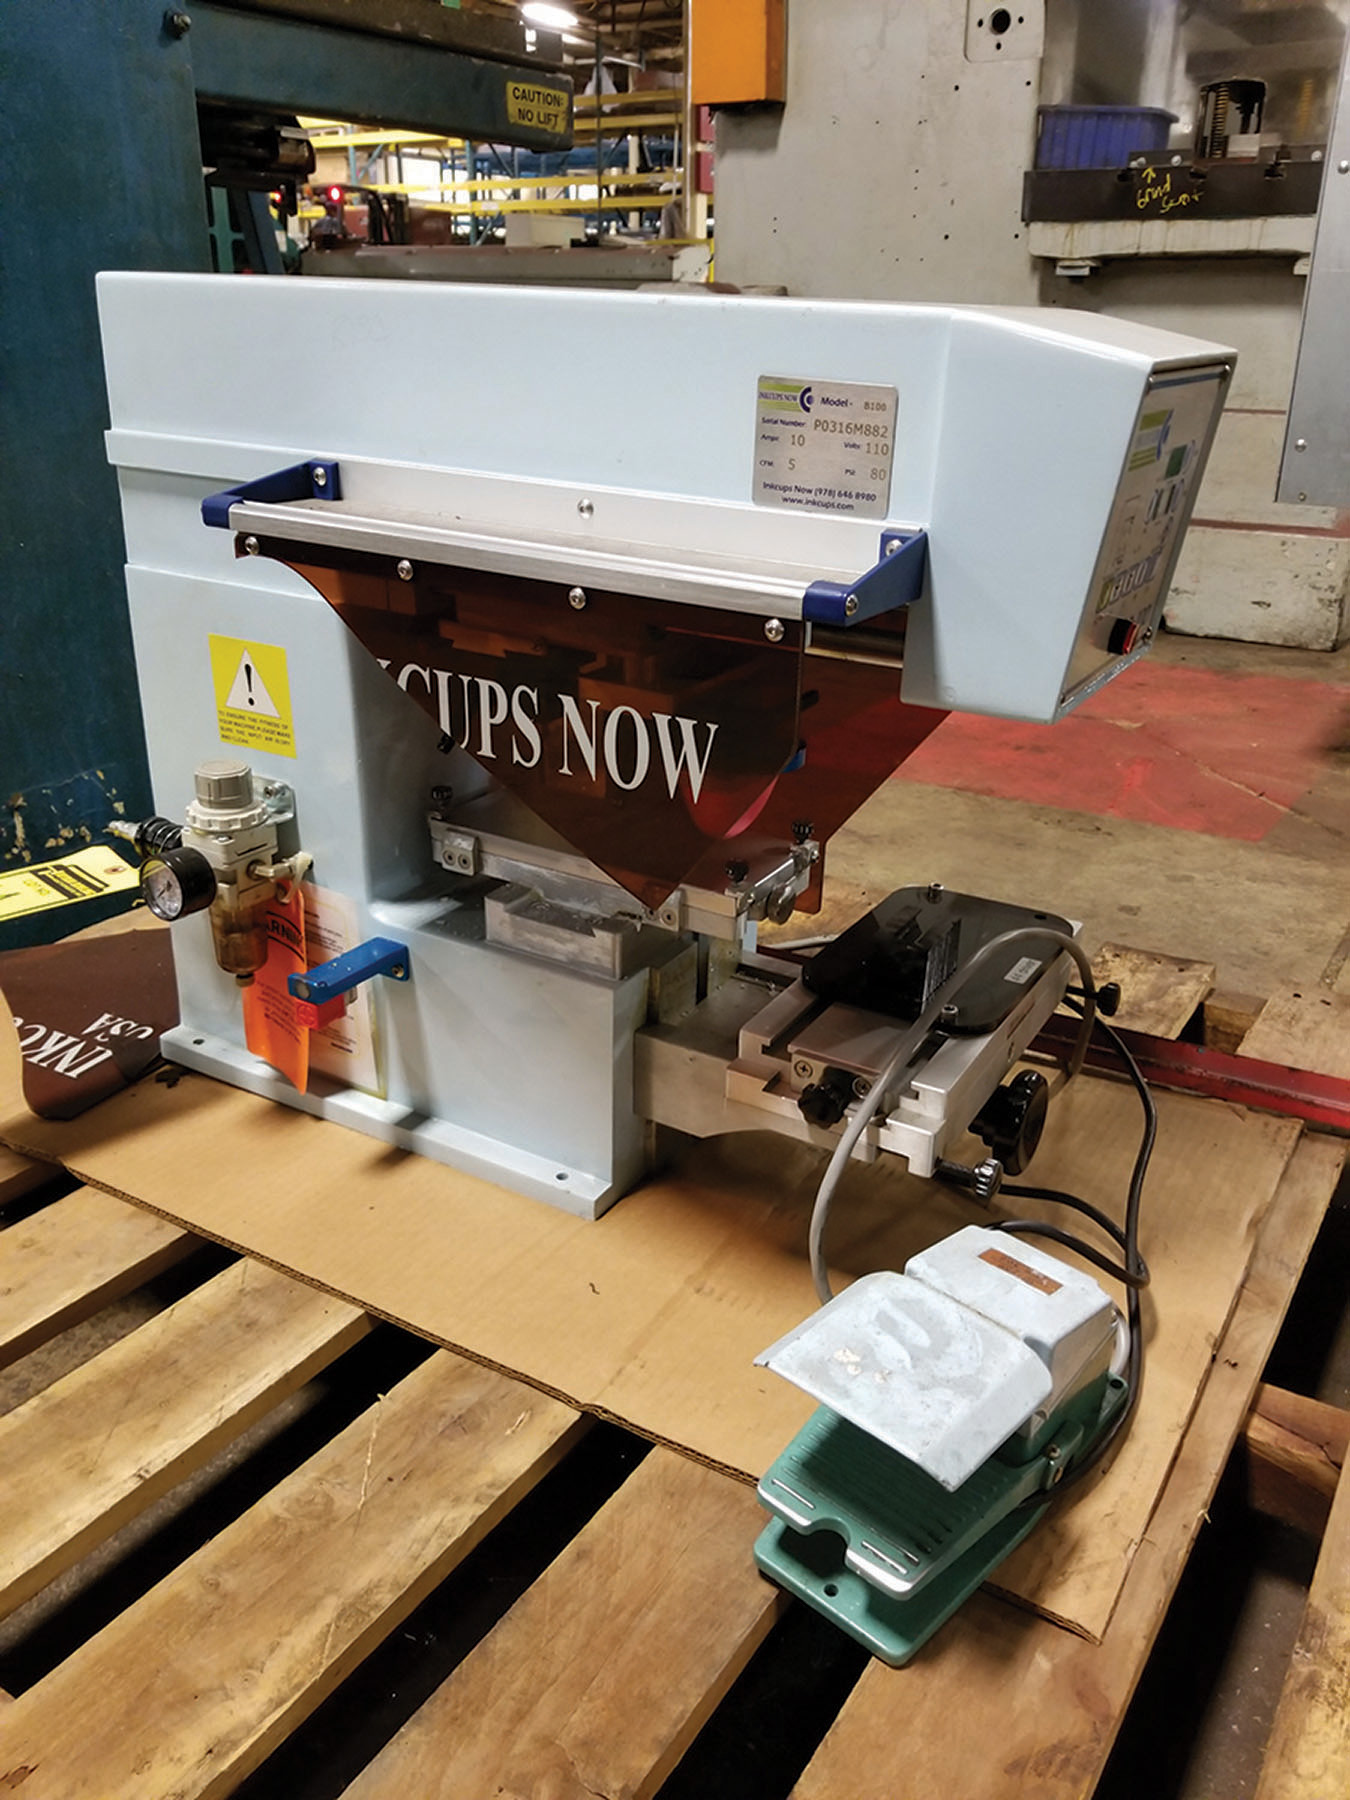 Lot 1A - INKCUPS NOW B100 PAD STAMP PRINTER, S/N P0316M882, 110V, FOOT SWITCH, 80-PSI